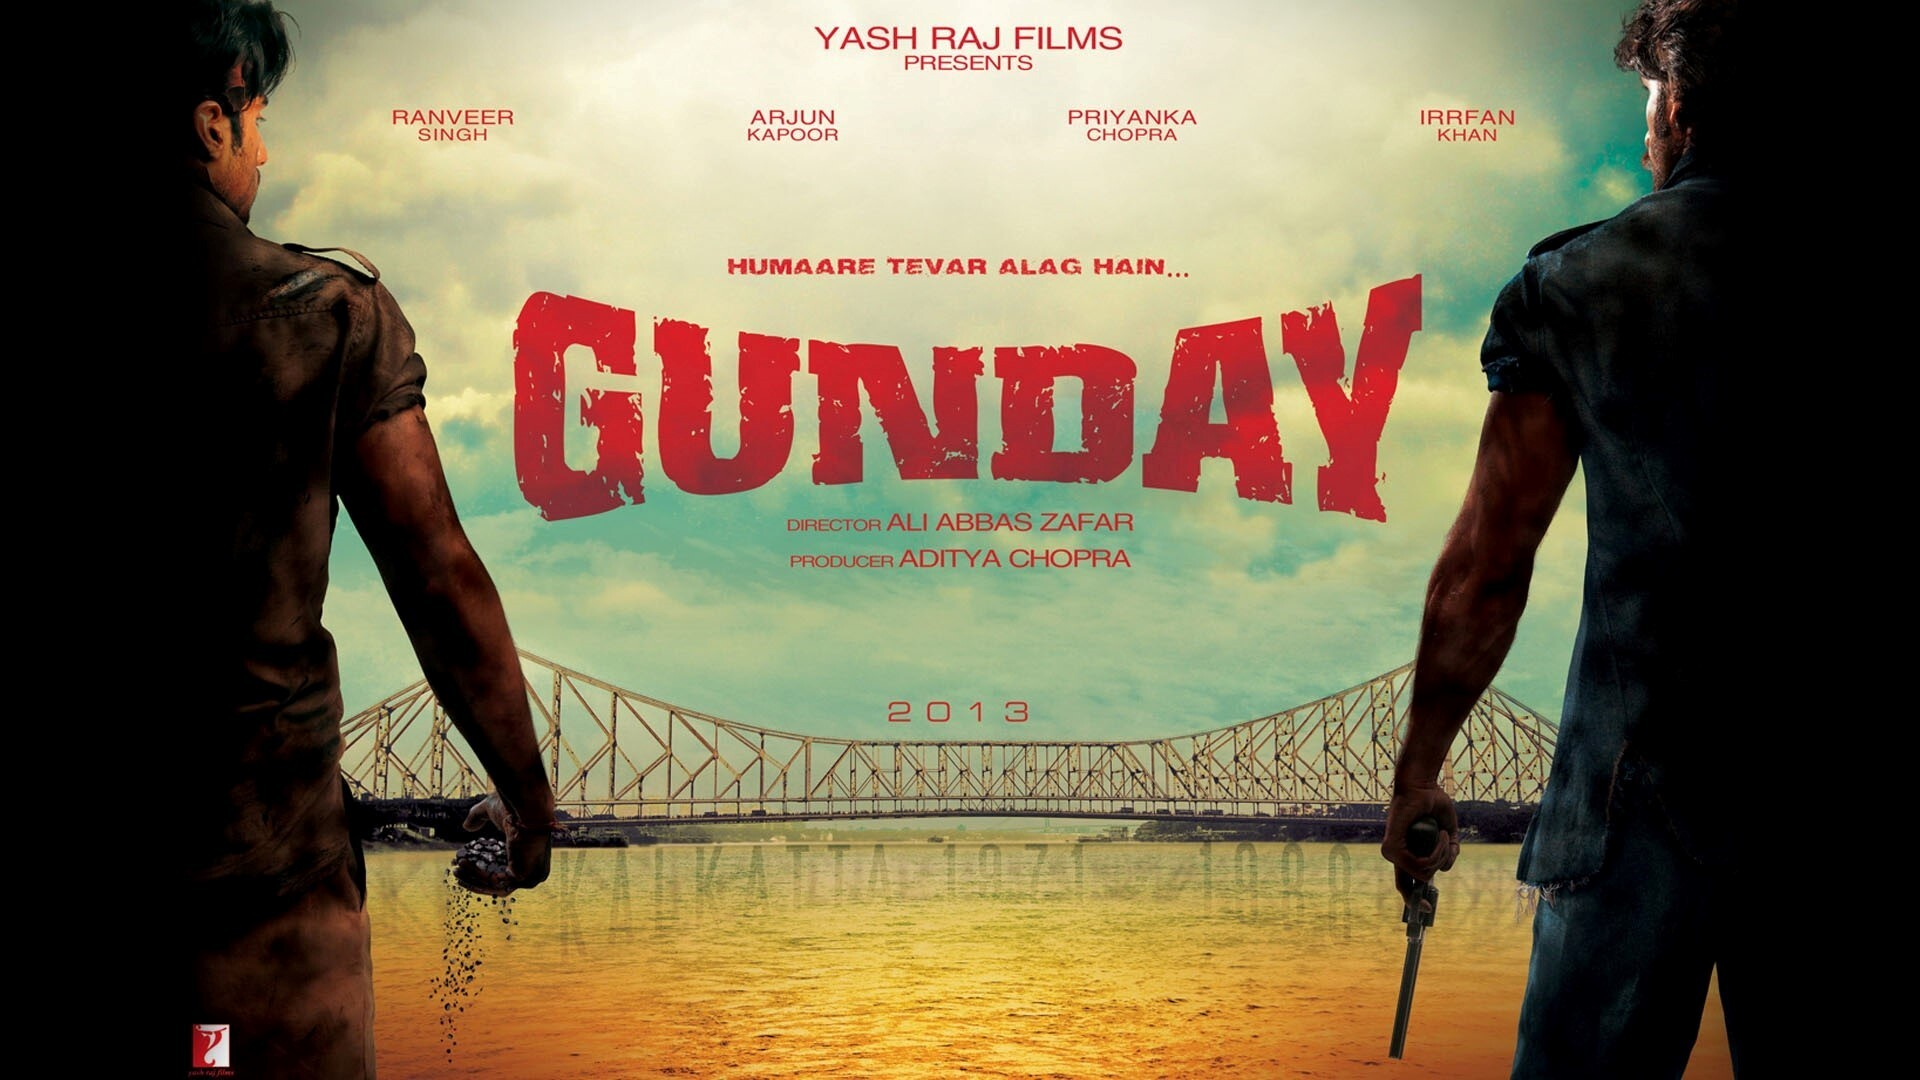 Gunday Hd Wallpapers Images Pictures Photos Download